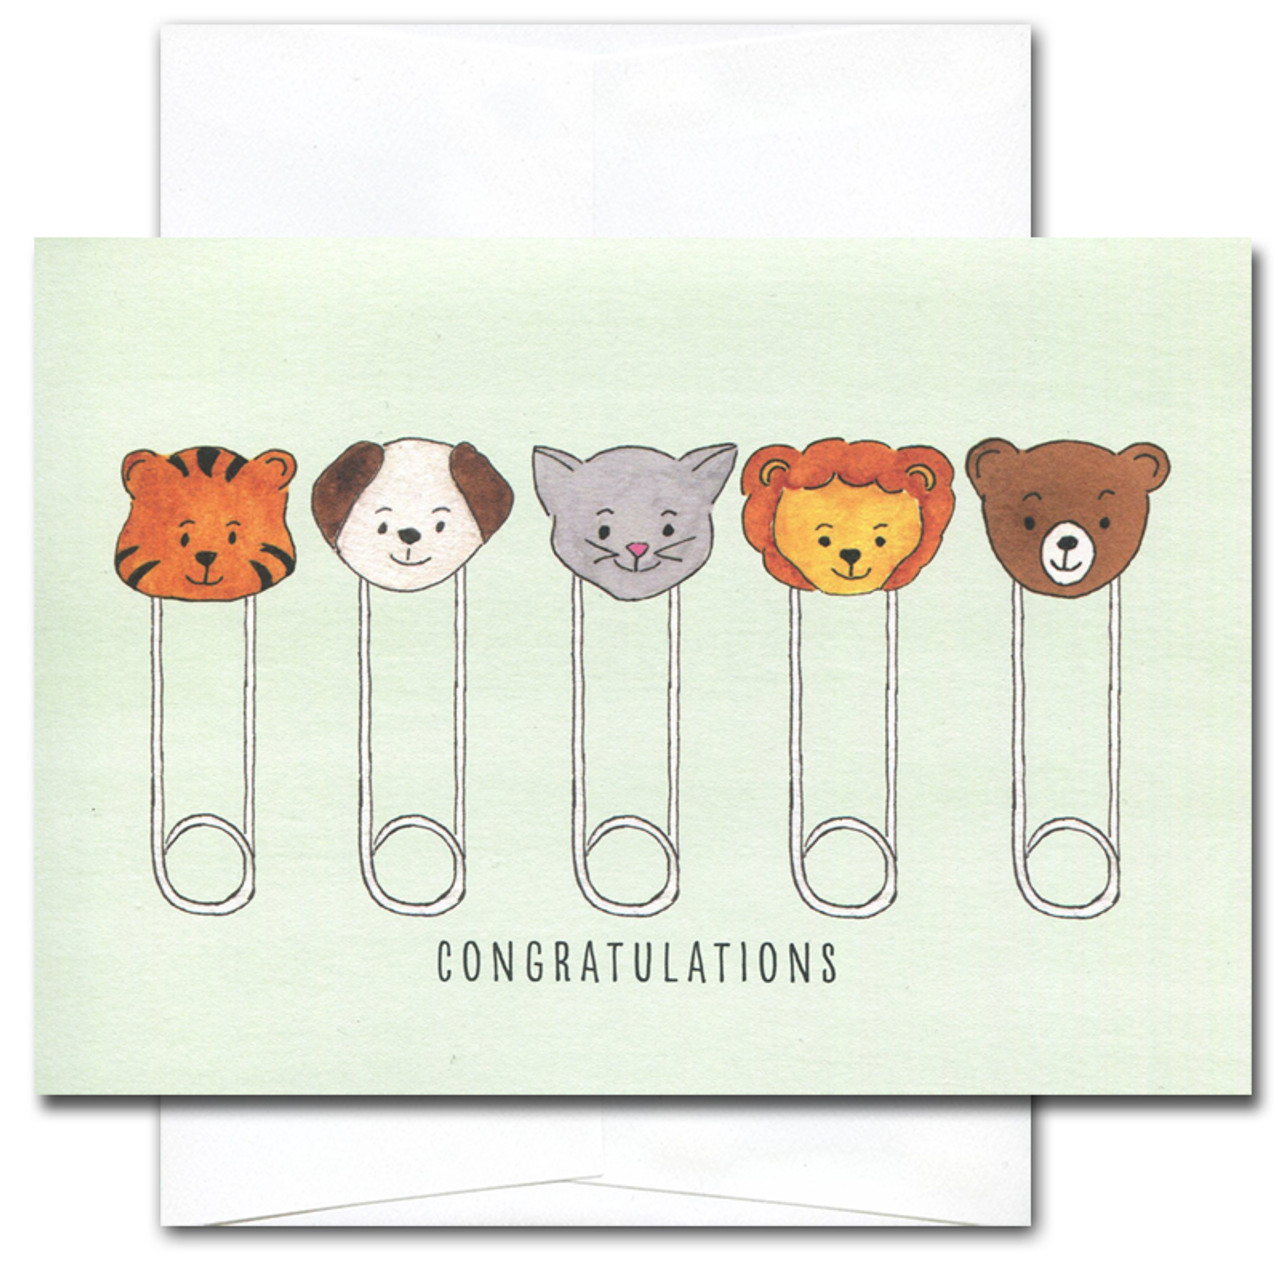 baby congratulations card has a line up of diaper pins with baby animal faces and the - Baby Congrats Card